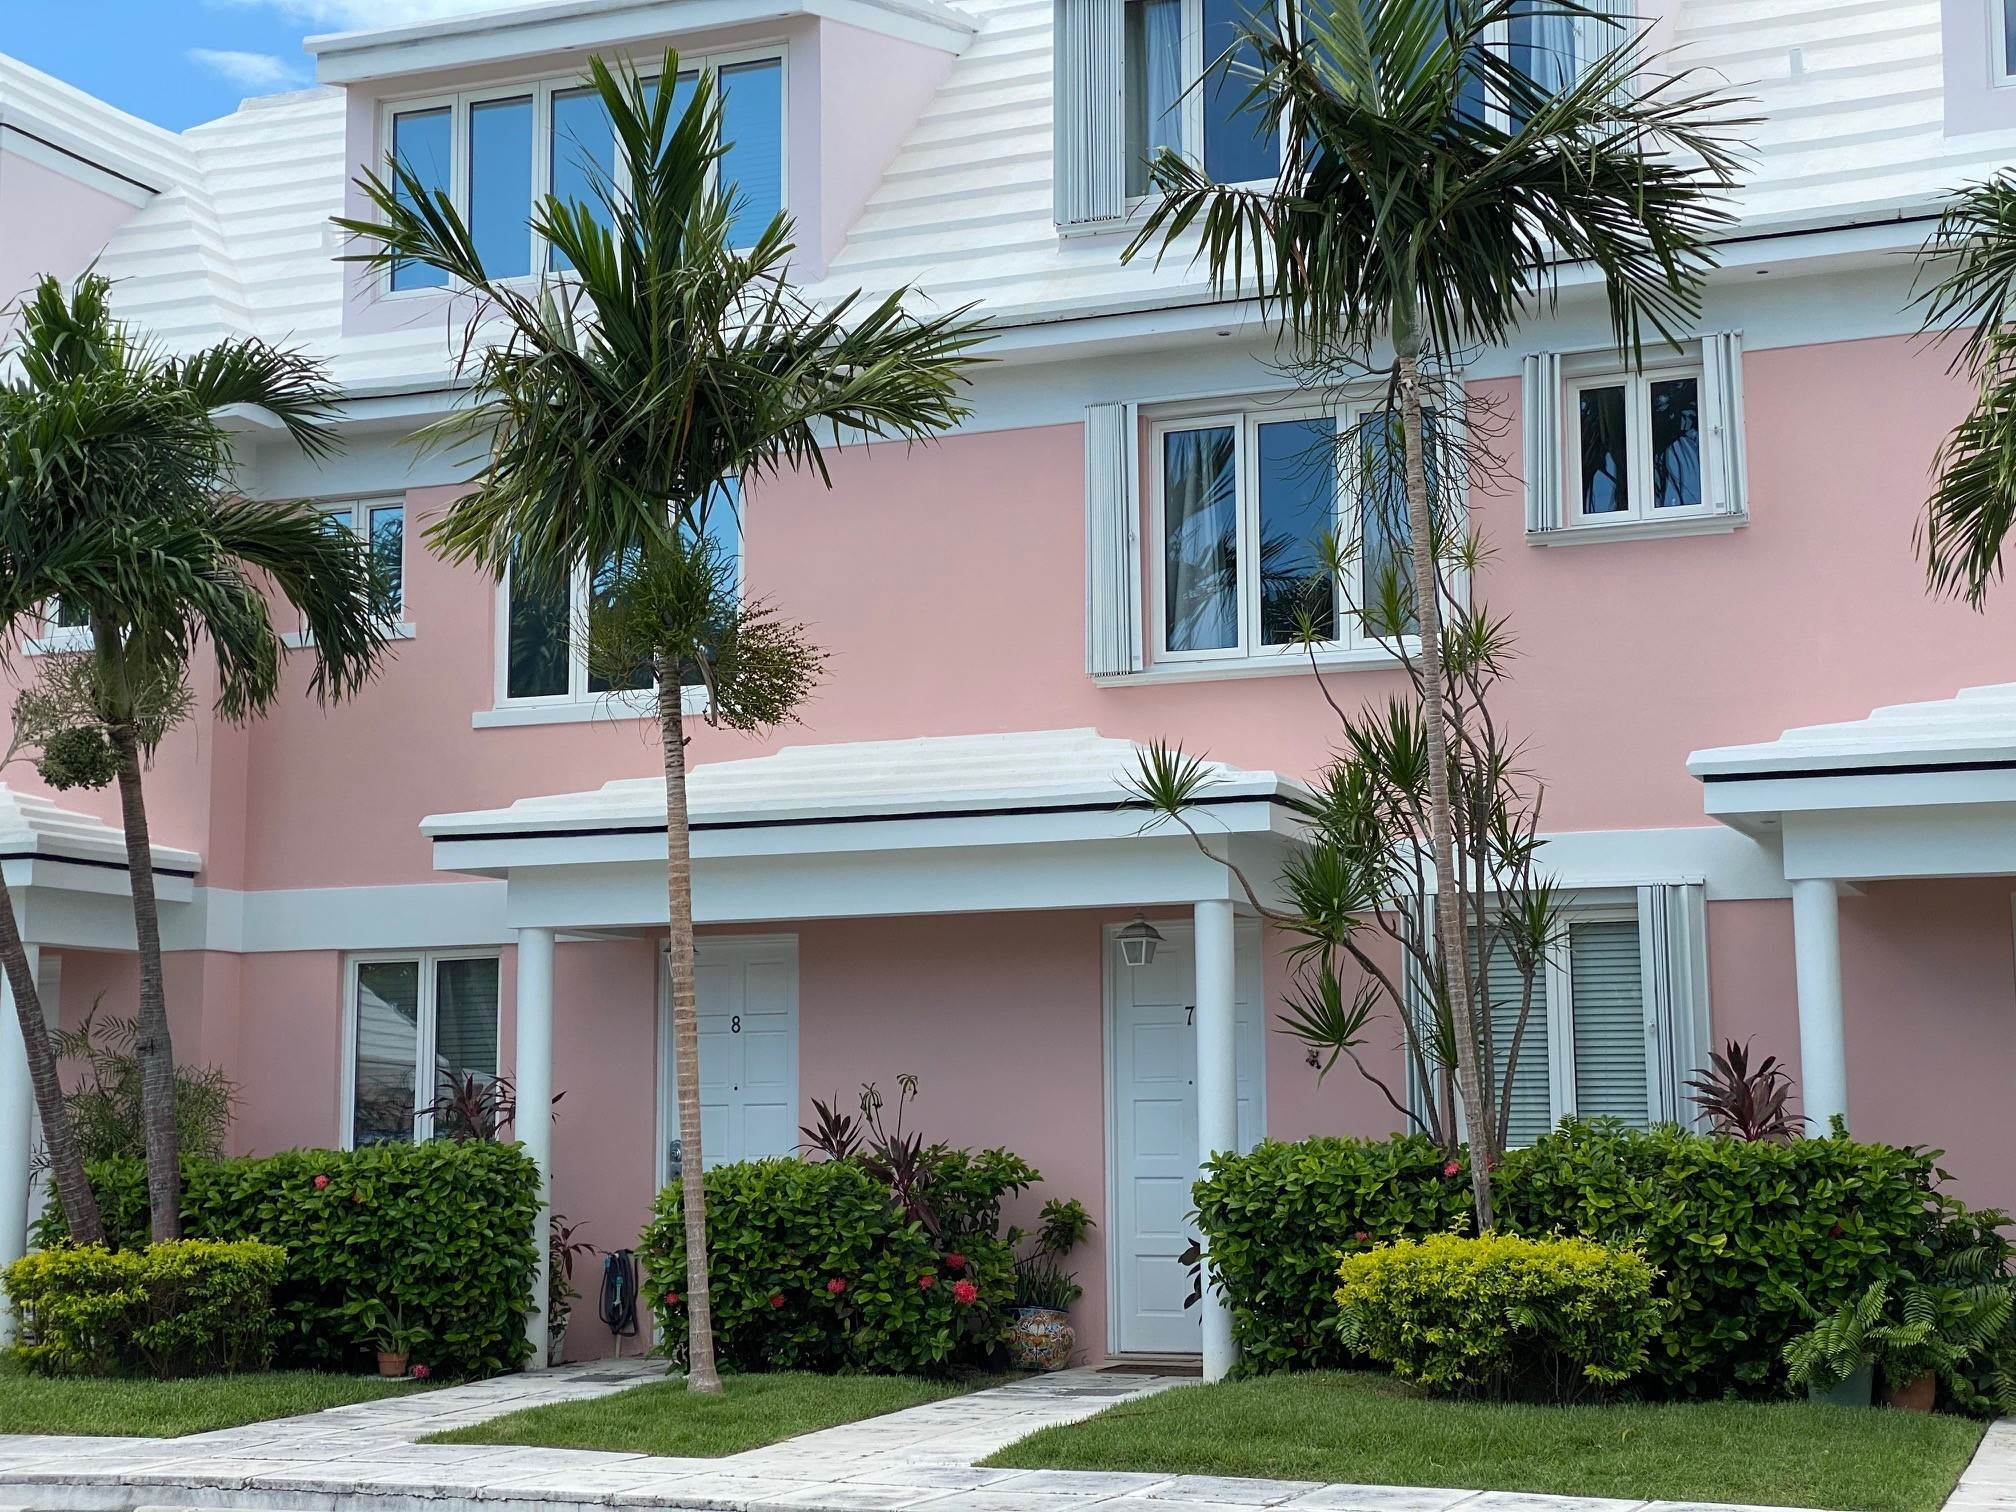 Co-op / Condo for Rent at Spacious Executive Canal Front townhouse - MLS 42525 Port New Providence, Yamacraw, Nassau And Paradise Island Bahamas